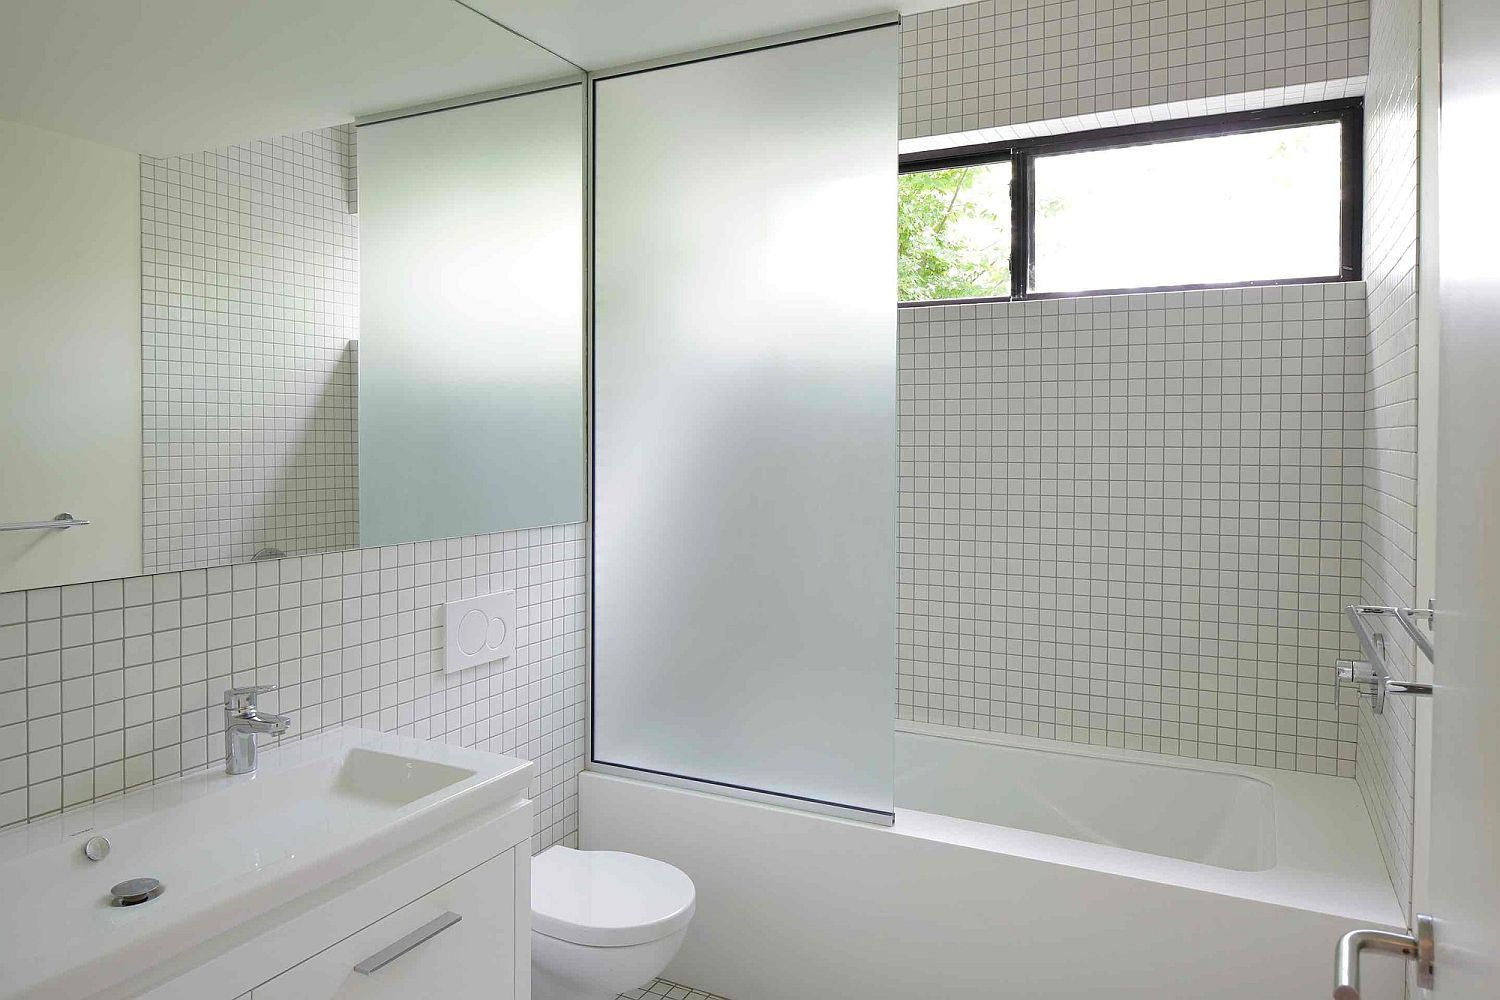 Contemporary bathroom in white tiled walls